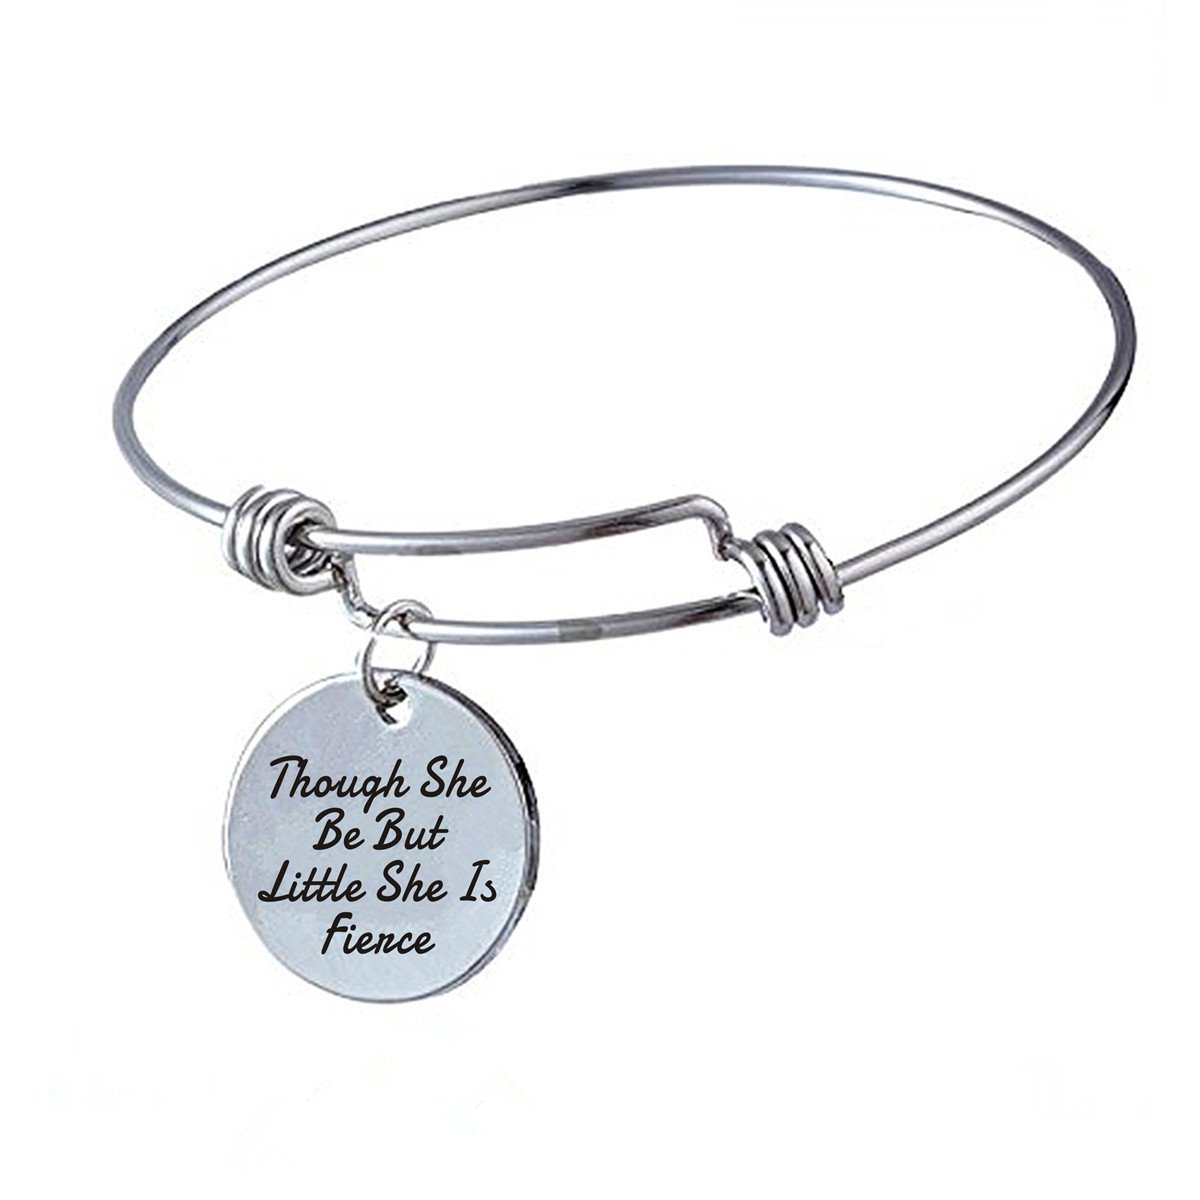 Inspirational Jewelry Gifts for Her  Though She Be But Little, She is fierce  Engraved Charm Bangle Bracelet Perfect Graduation Birthday Christmas Gifts For Girls